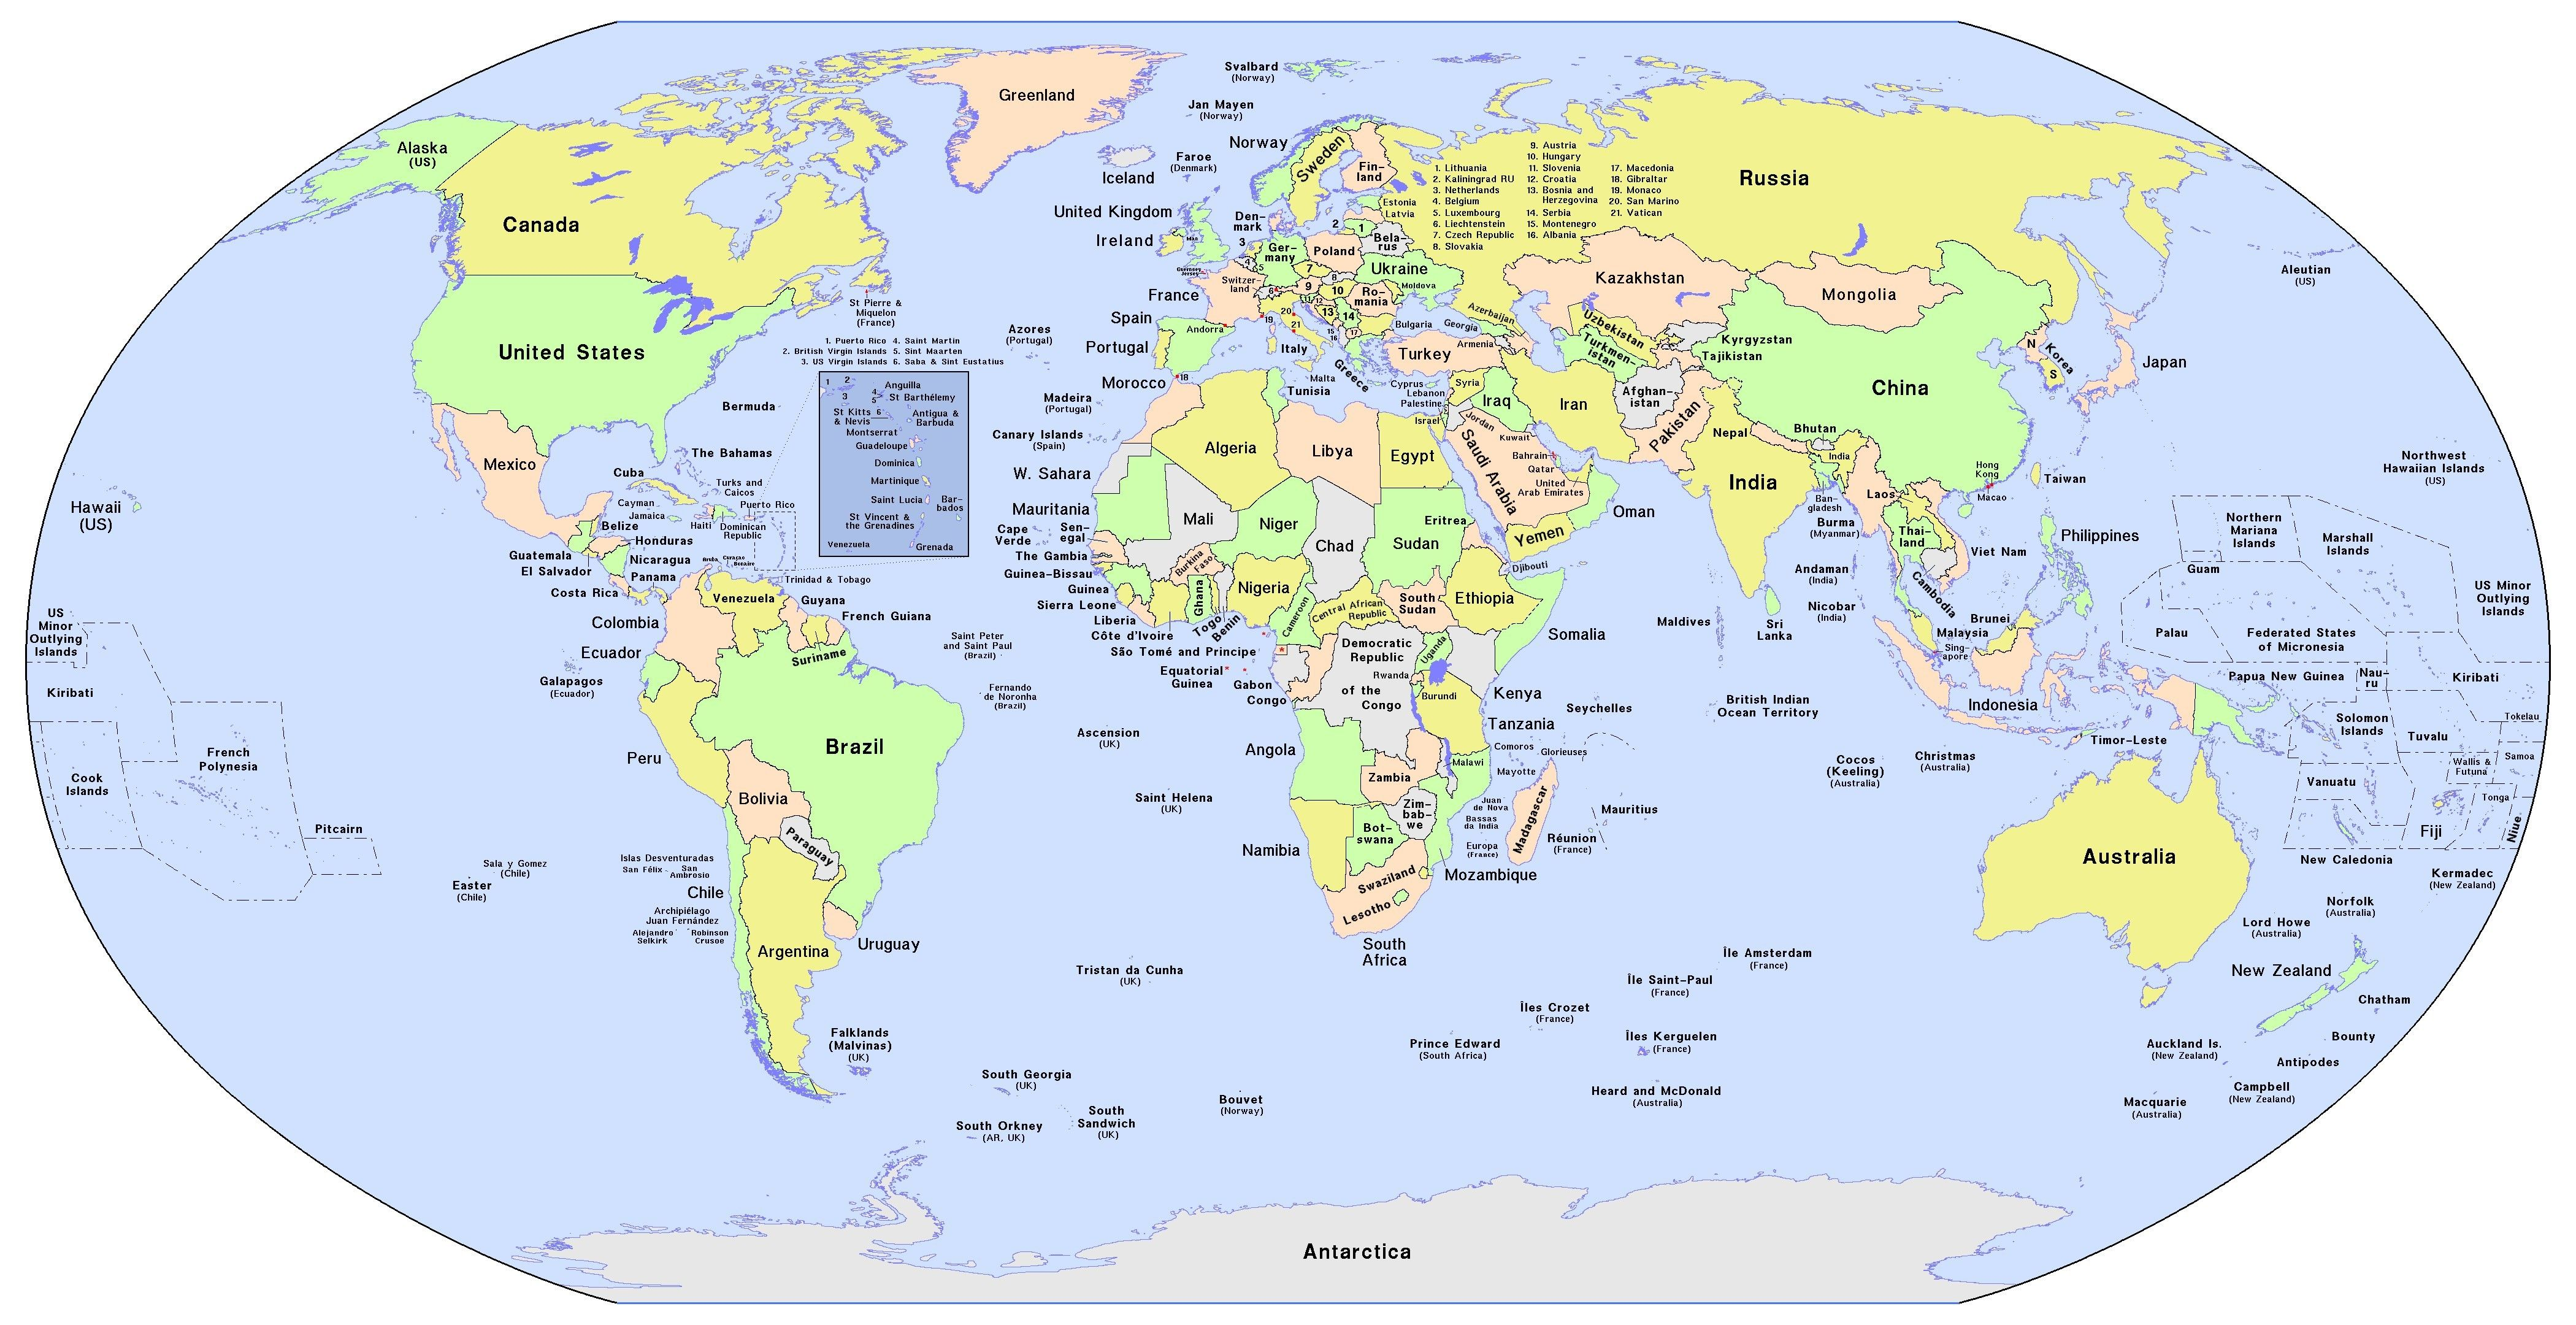 World Map Countries With Names New Full Country Name At